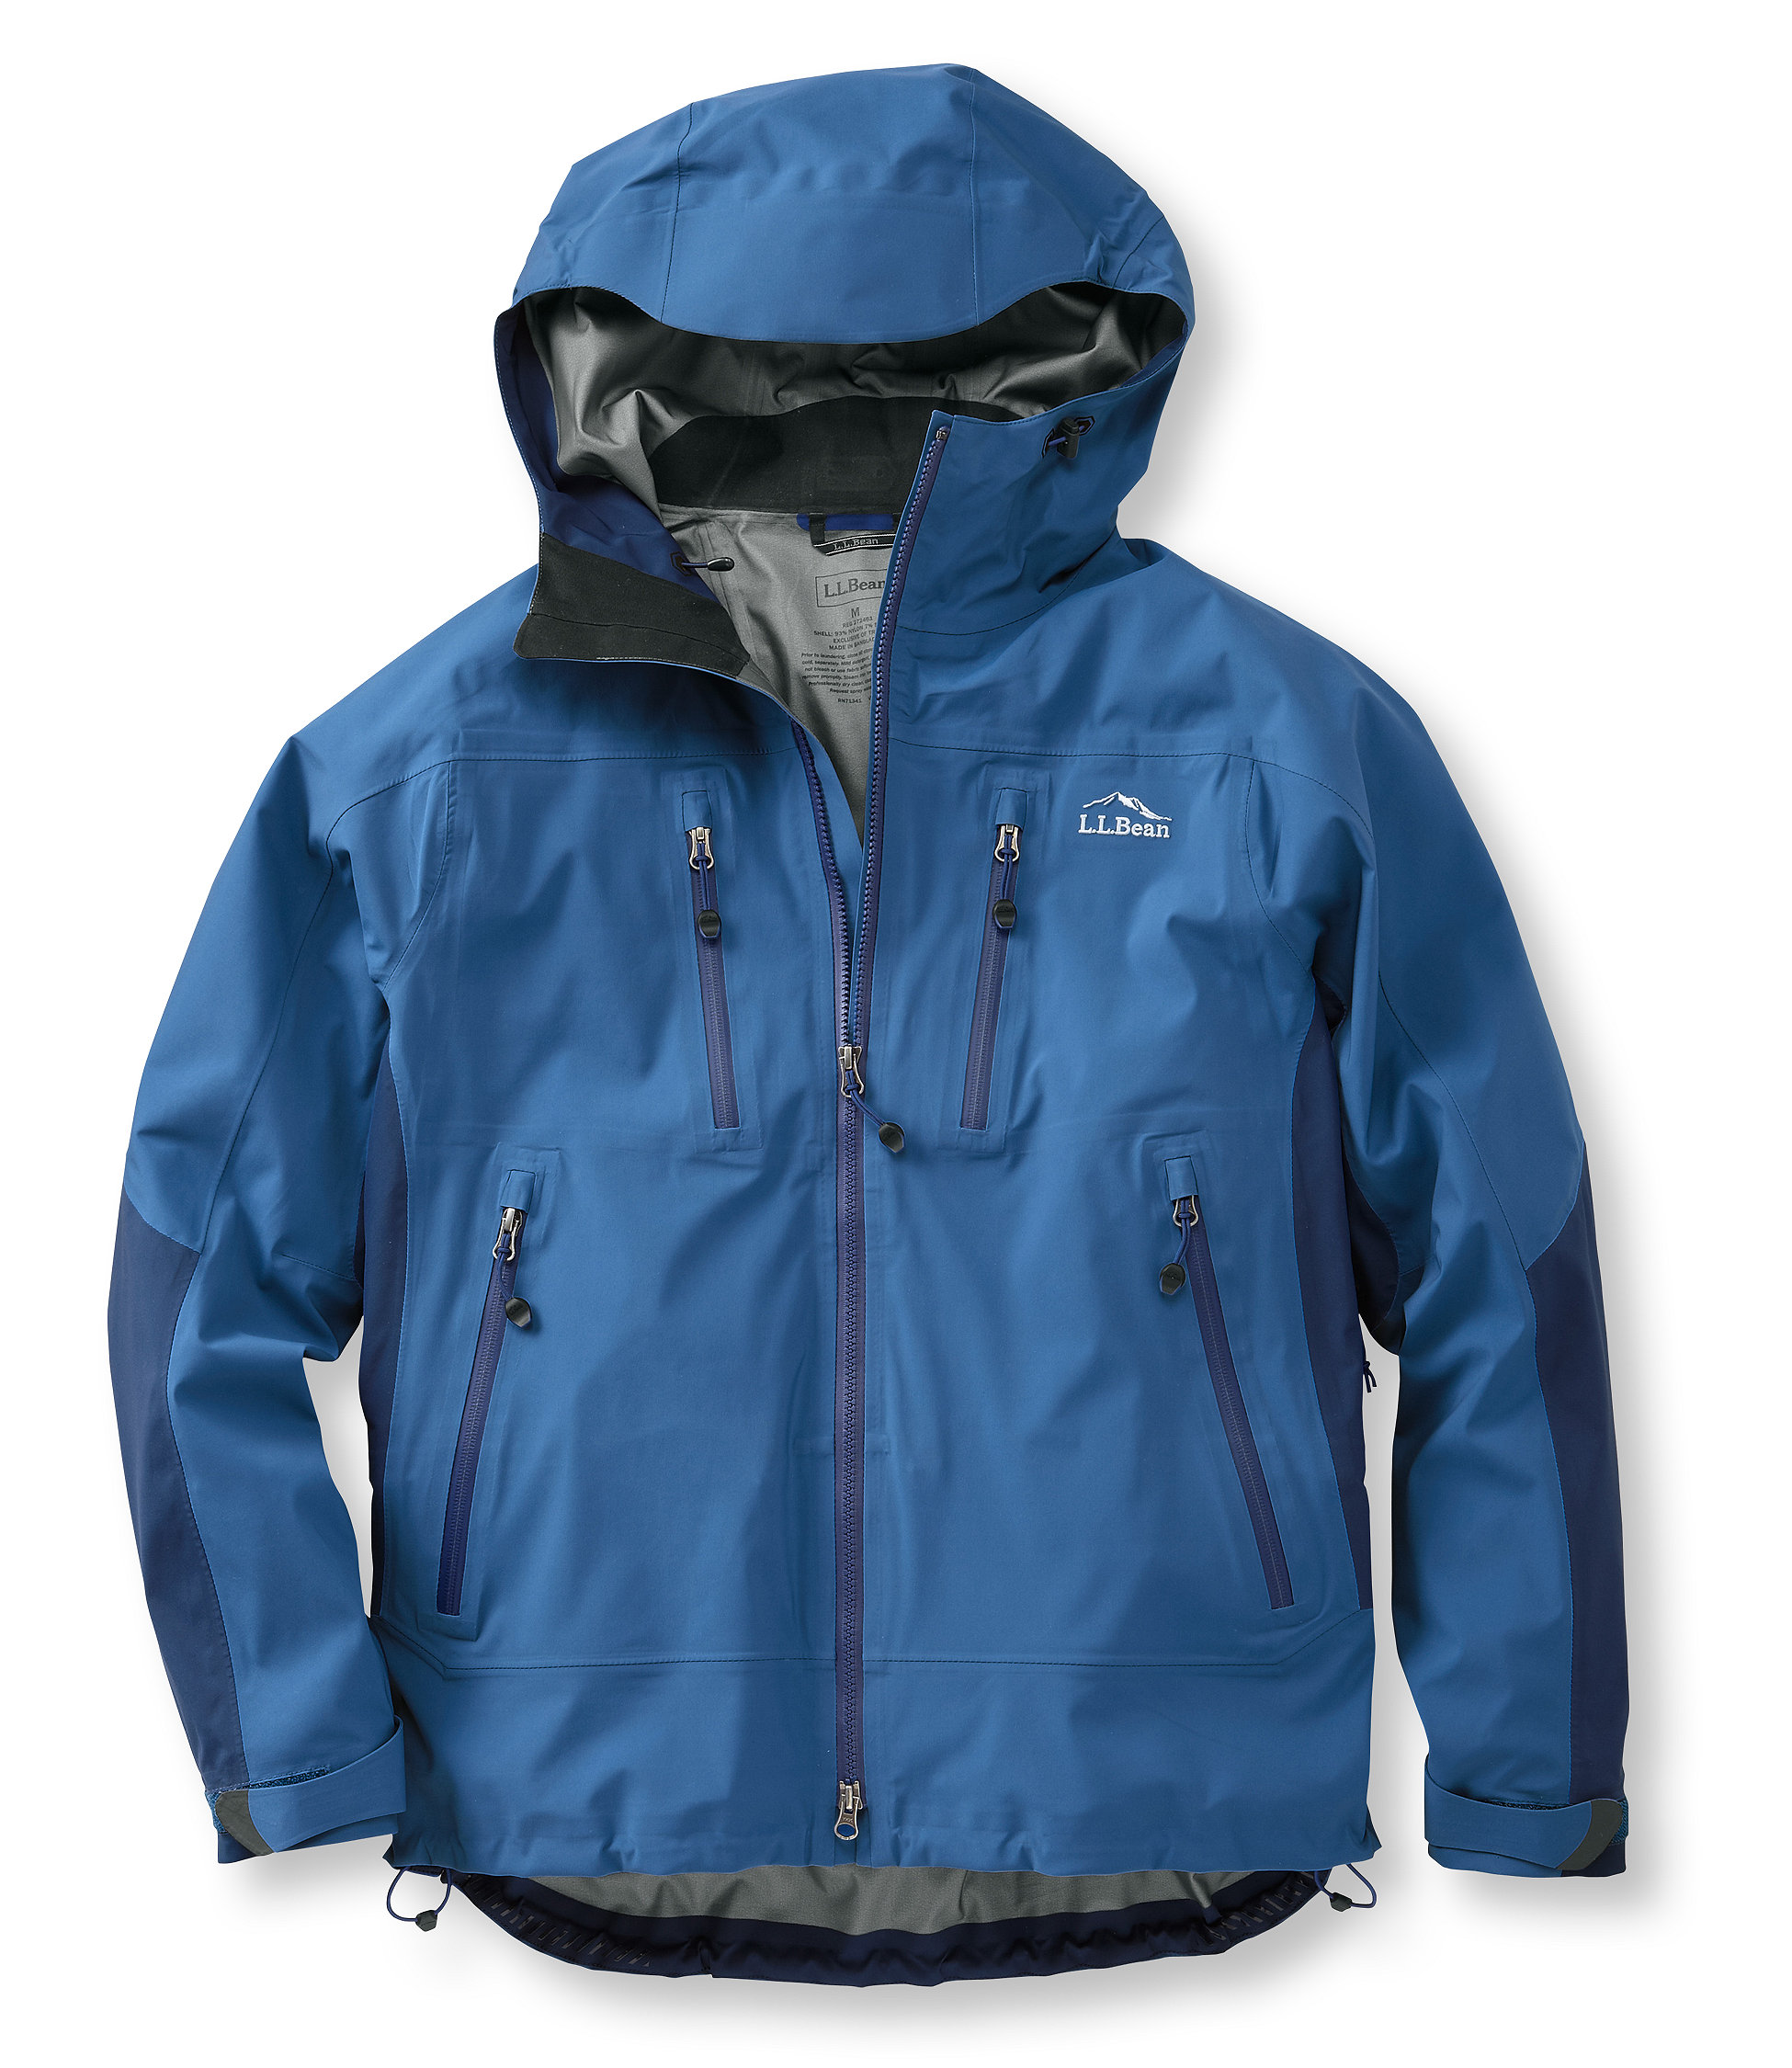 L.L.Bean Ascent Jacket